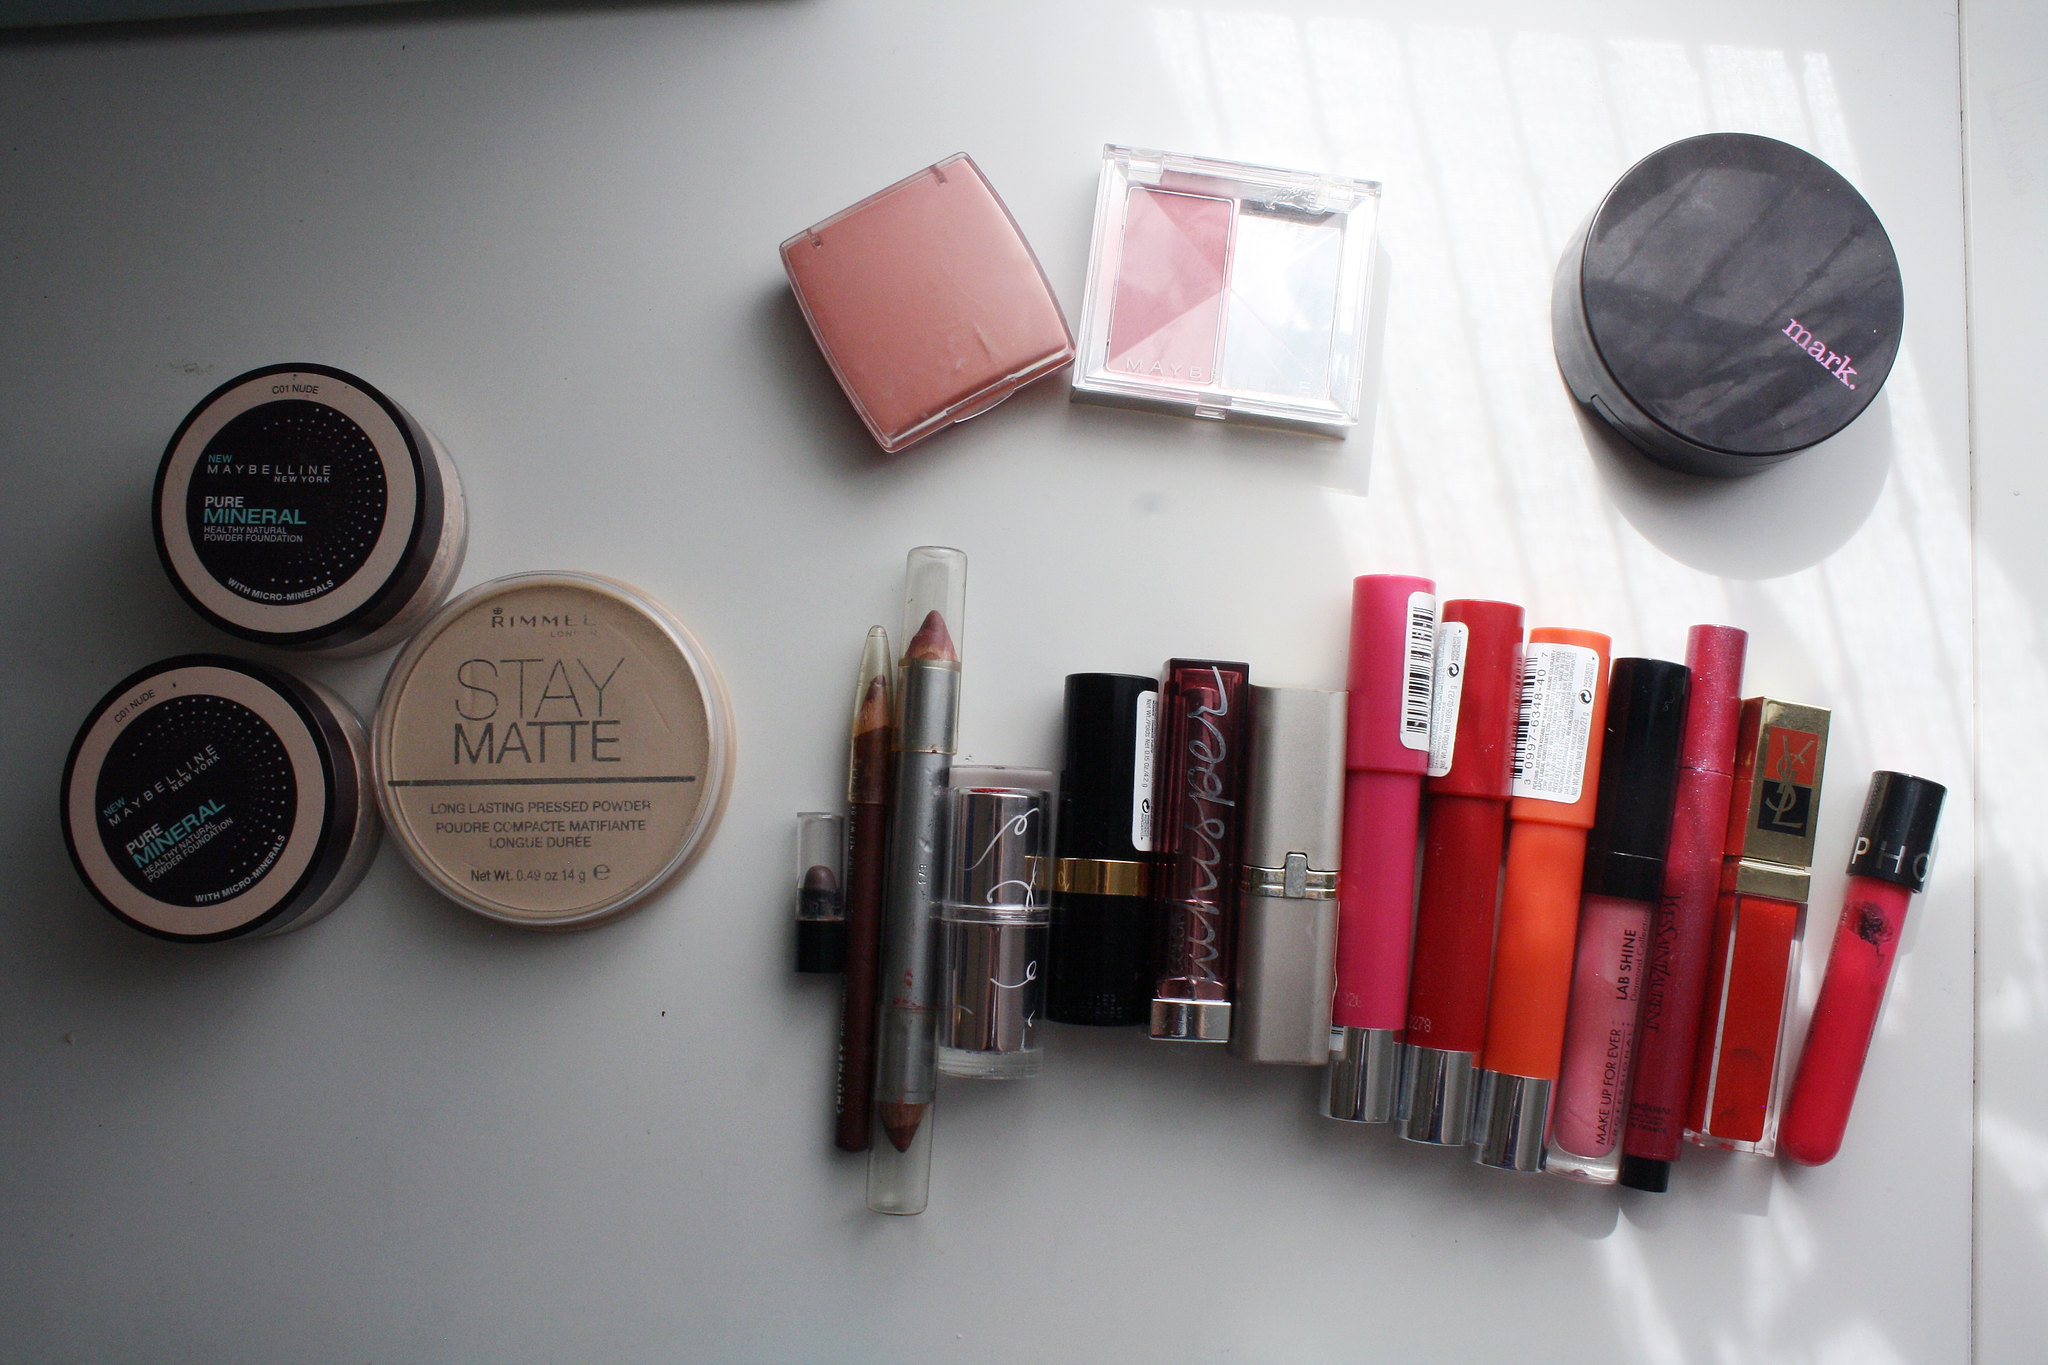 Maybelline powder Rimmel L'Oreal blush Avon Mark bronzer Revlon Kissable balm Make Up For Ever gloss YSL Yves Saint Laurent gloss Etude House Revlon Lust For Blush Clinique Chubby Stick Bonne Bell Lip Definer Olay lipstick